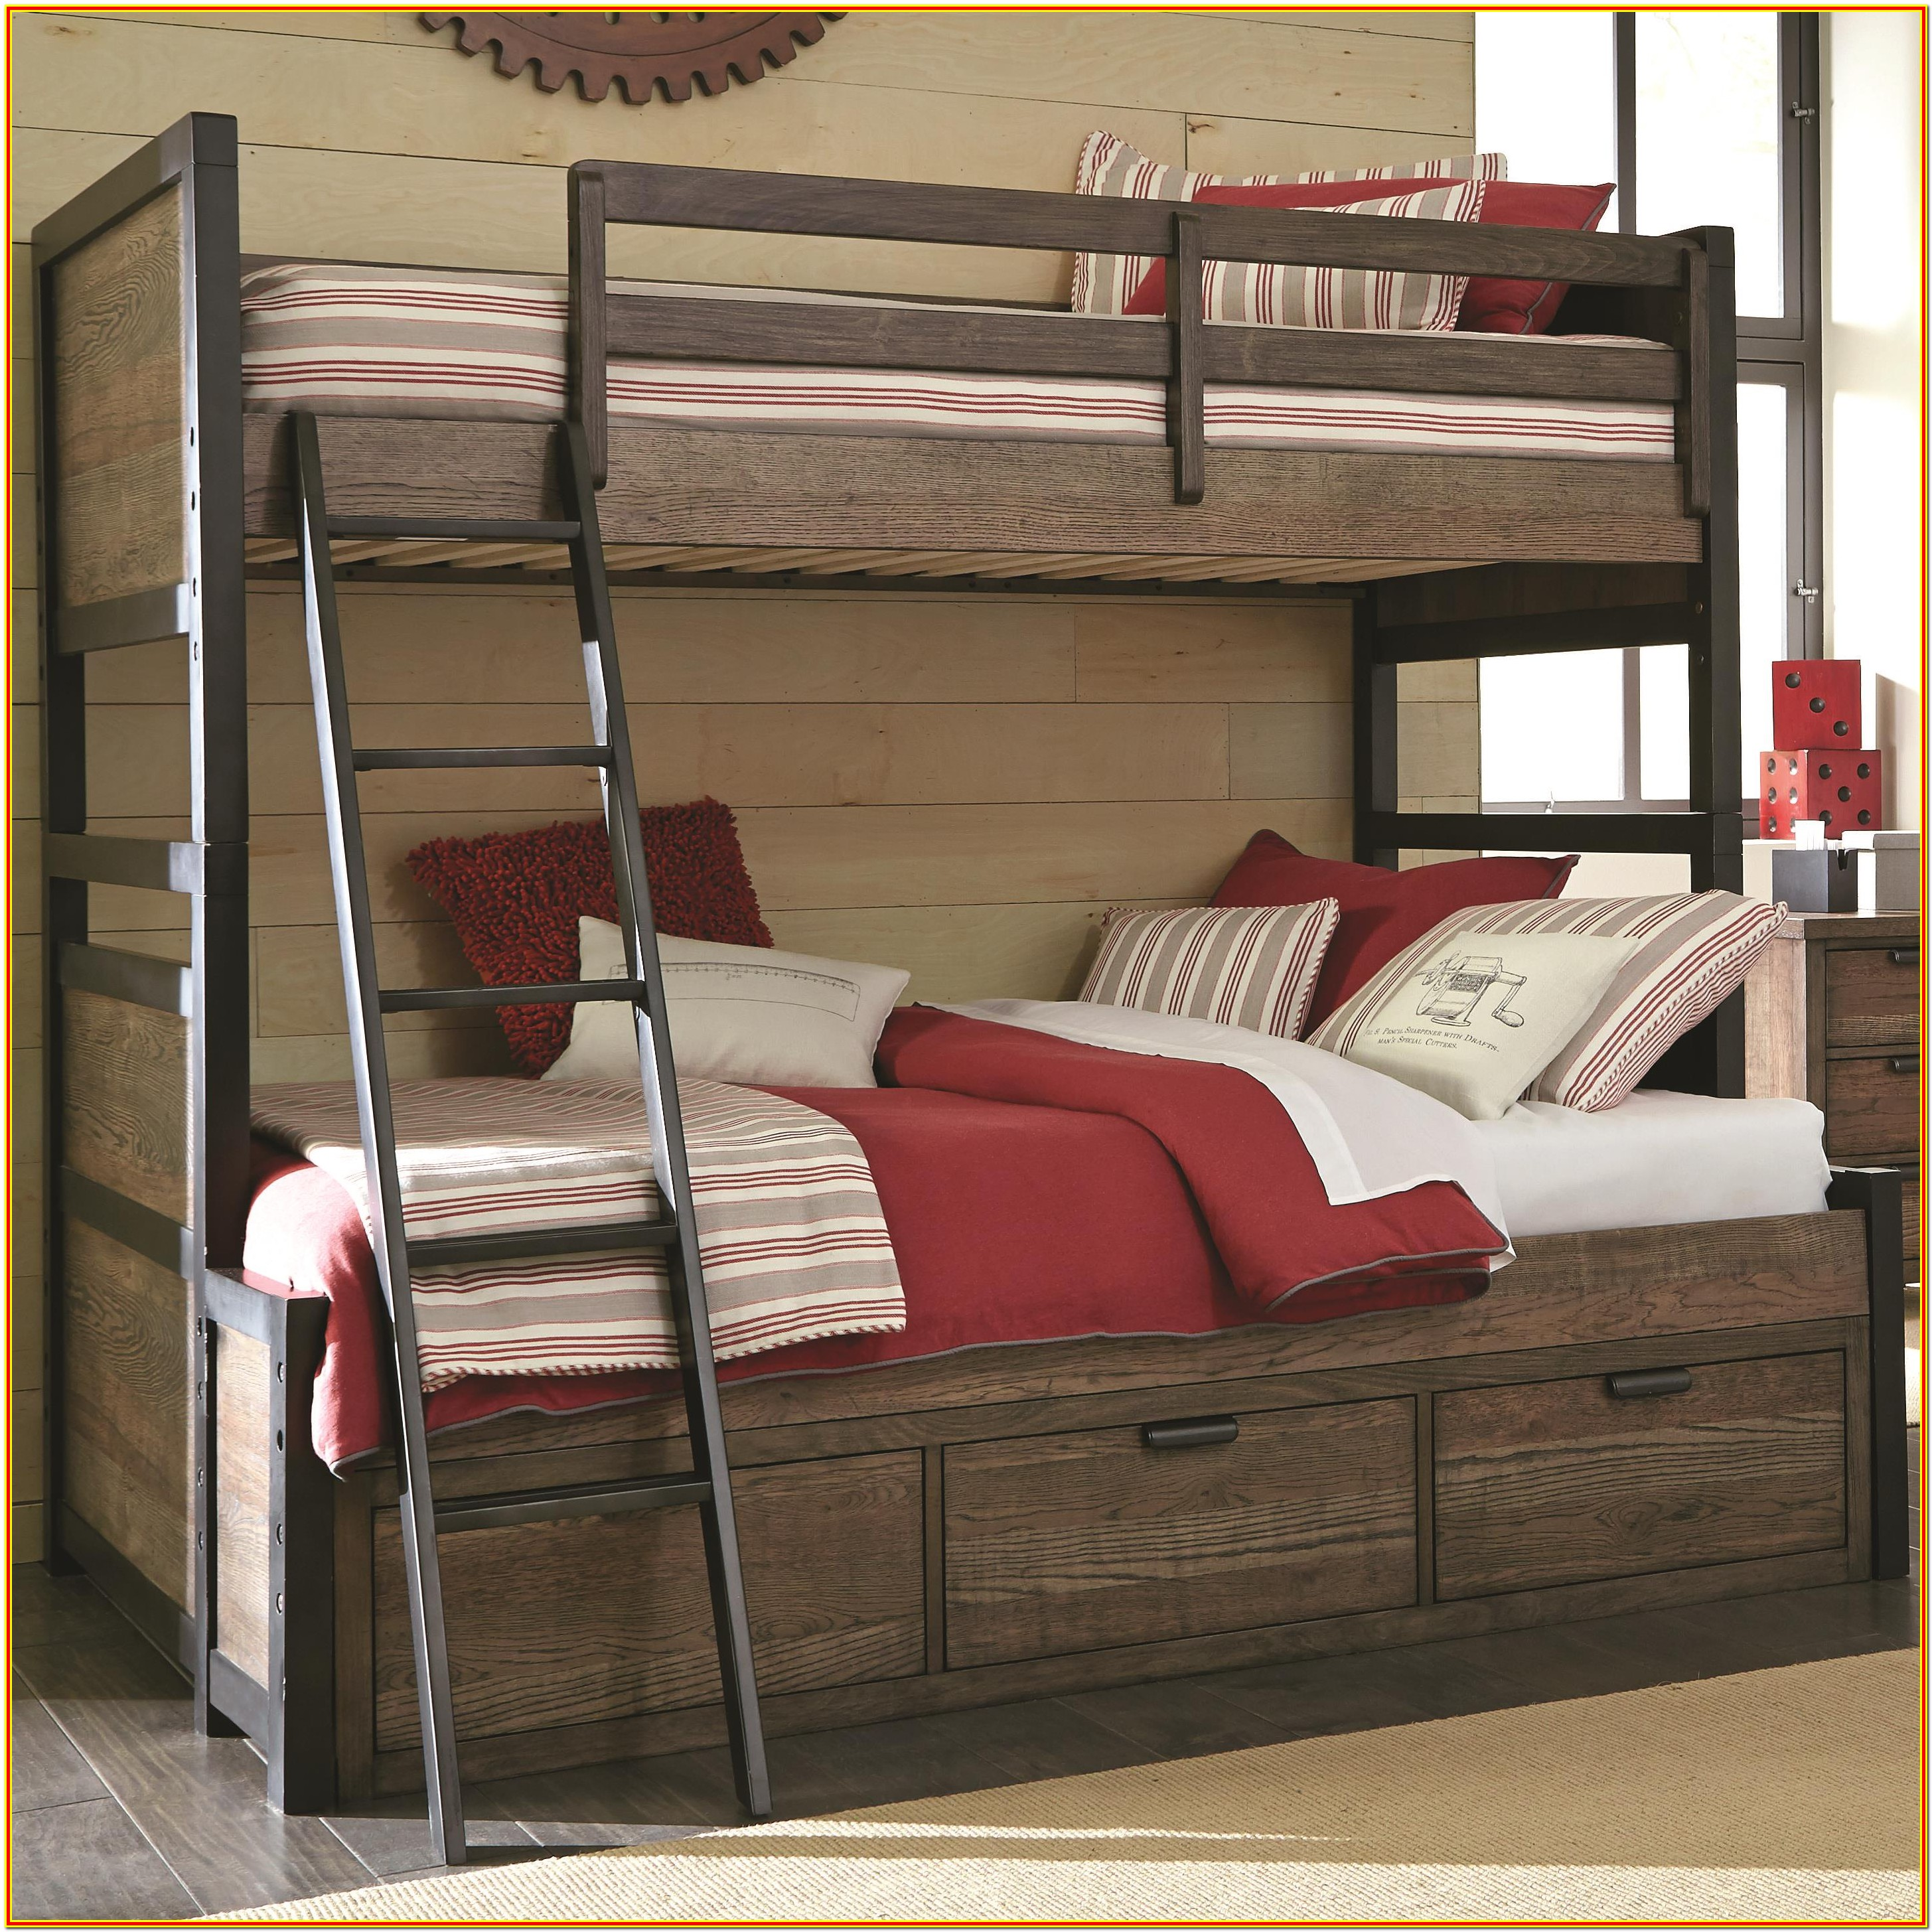 Twin Over Full Bunk Bed Plans With Drawers